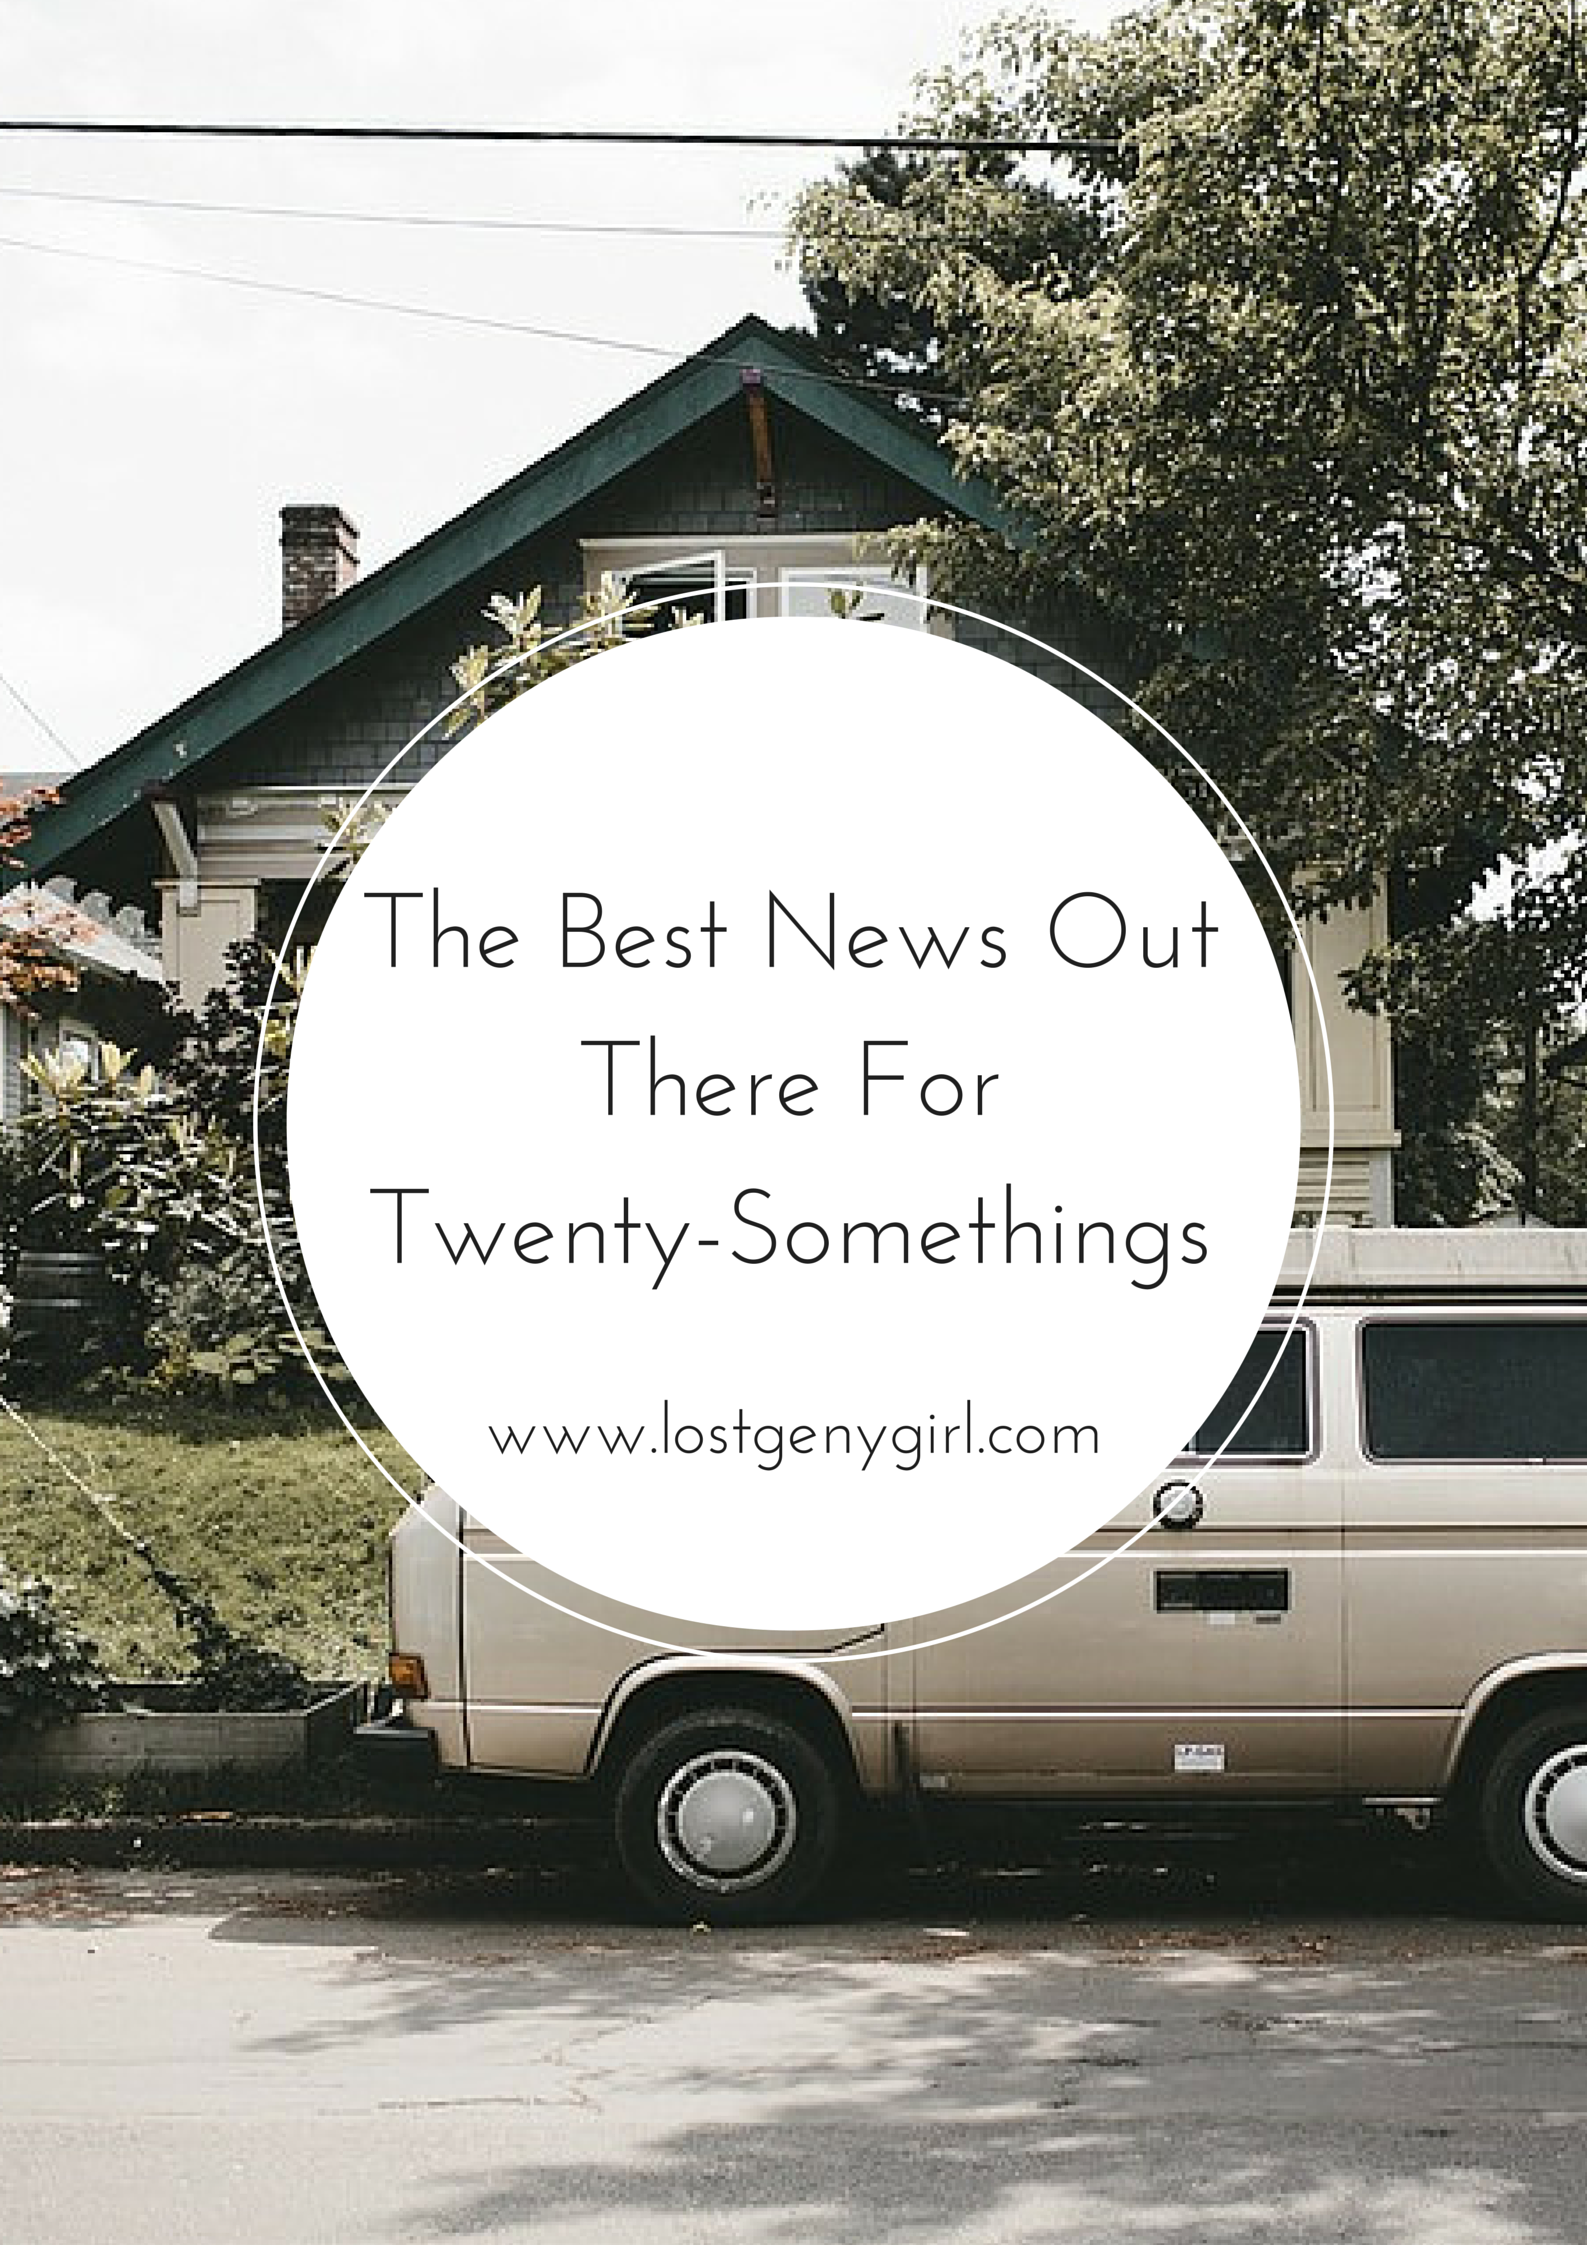 Hey, Twenty-Somethings…You Really Don't Have Much to Lose